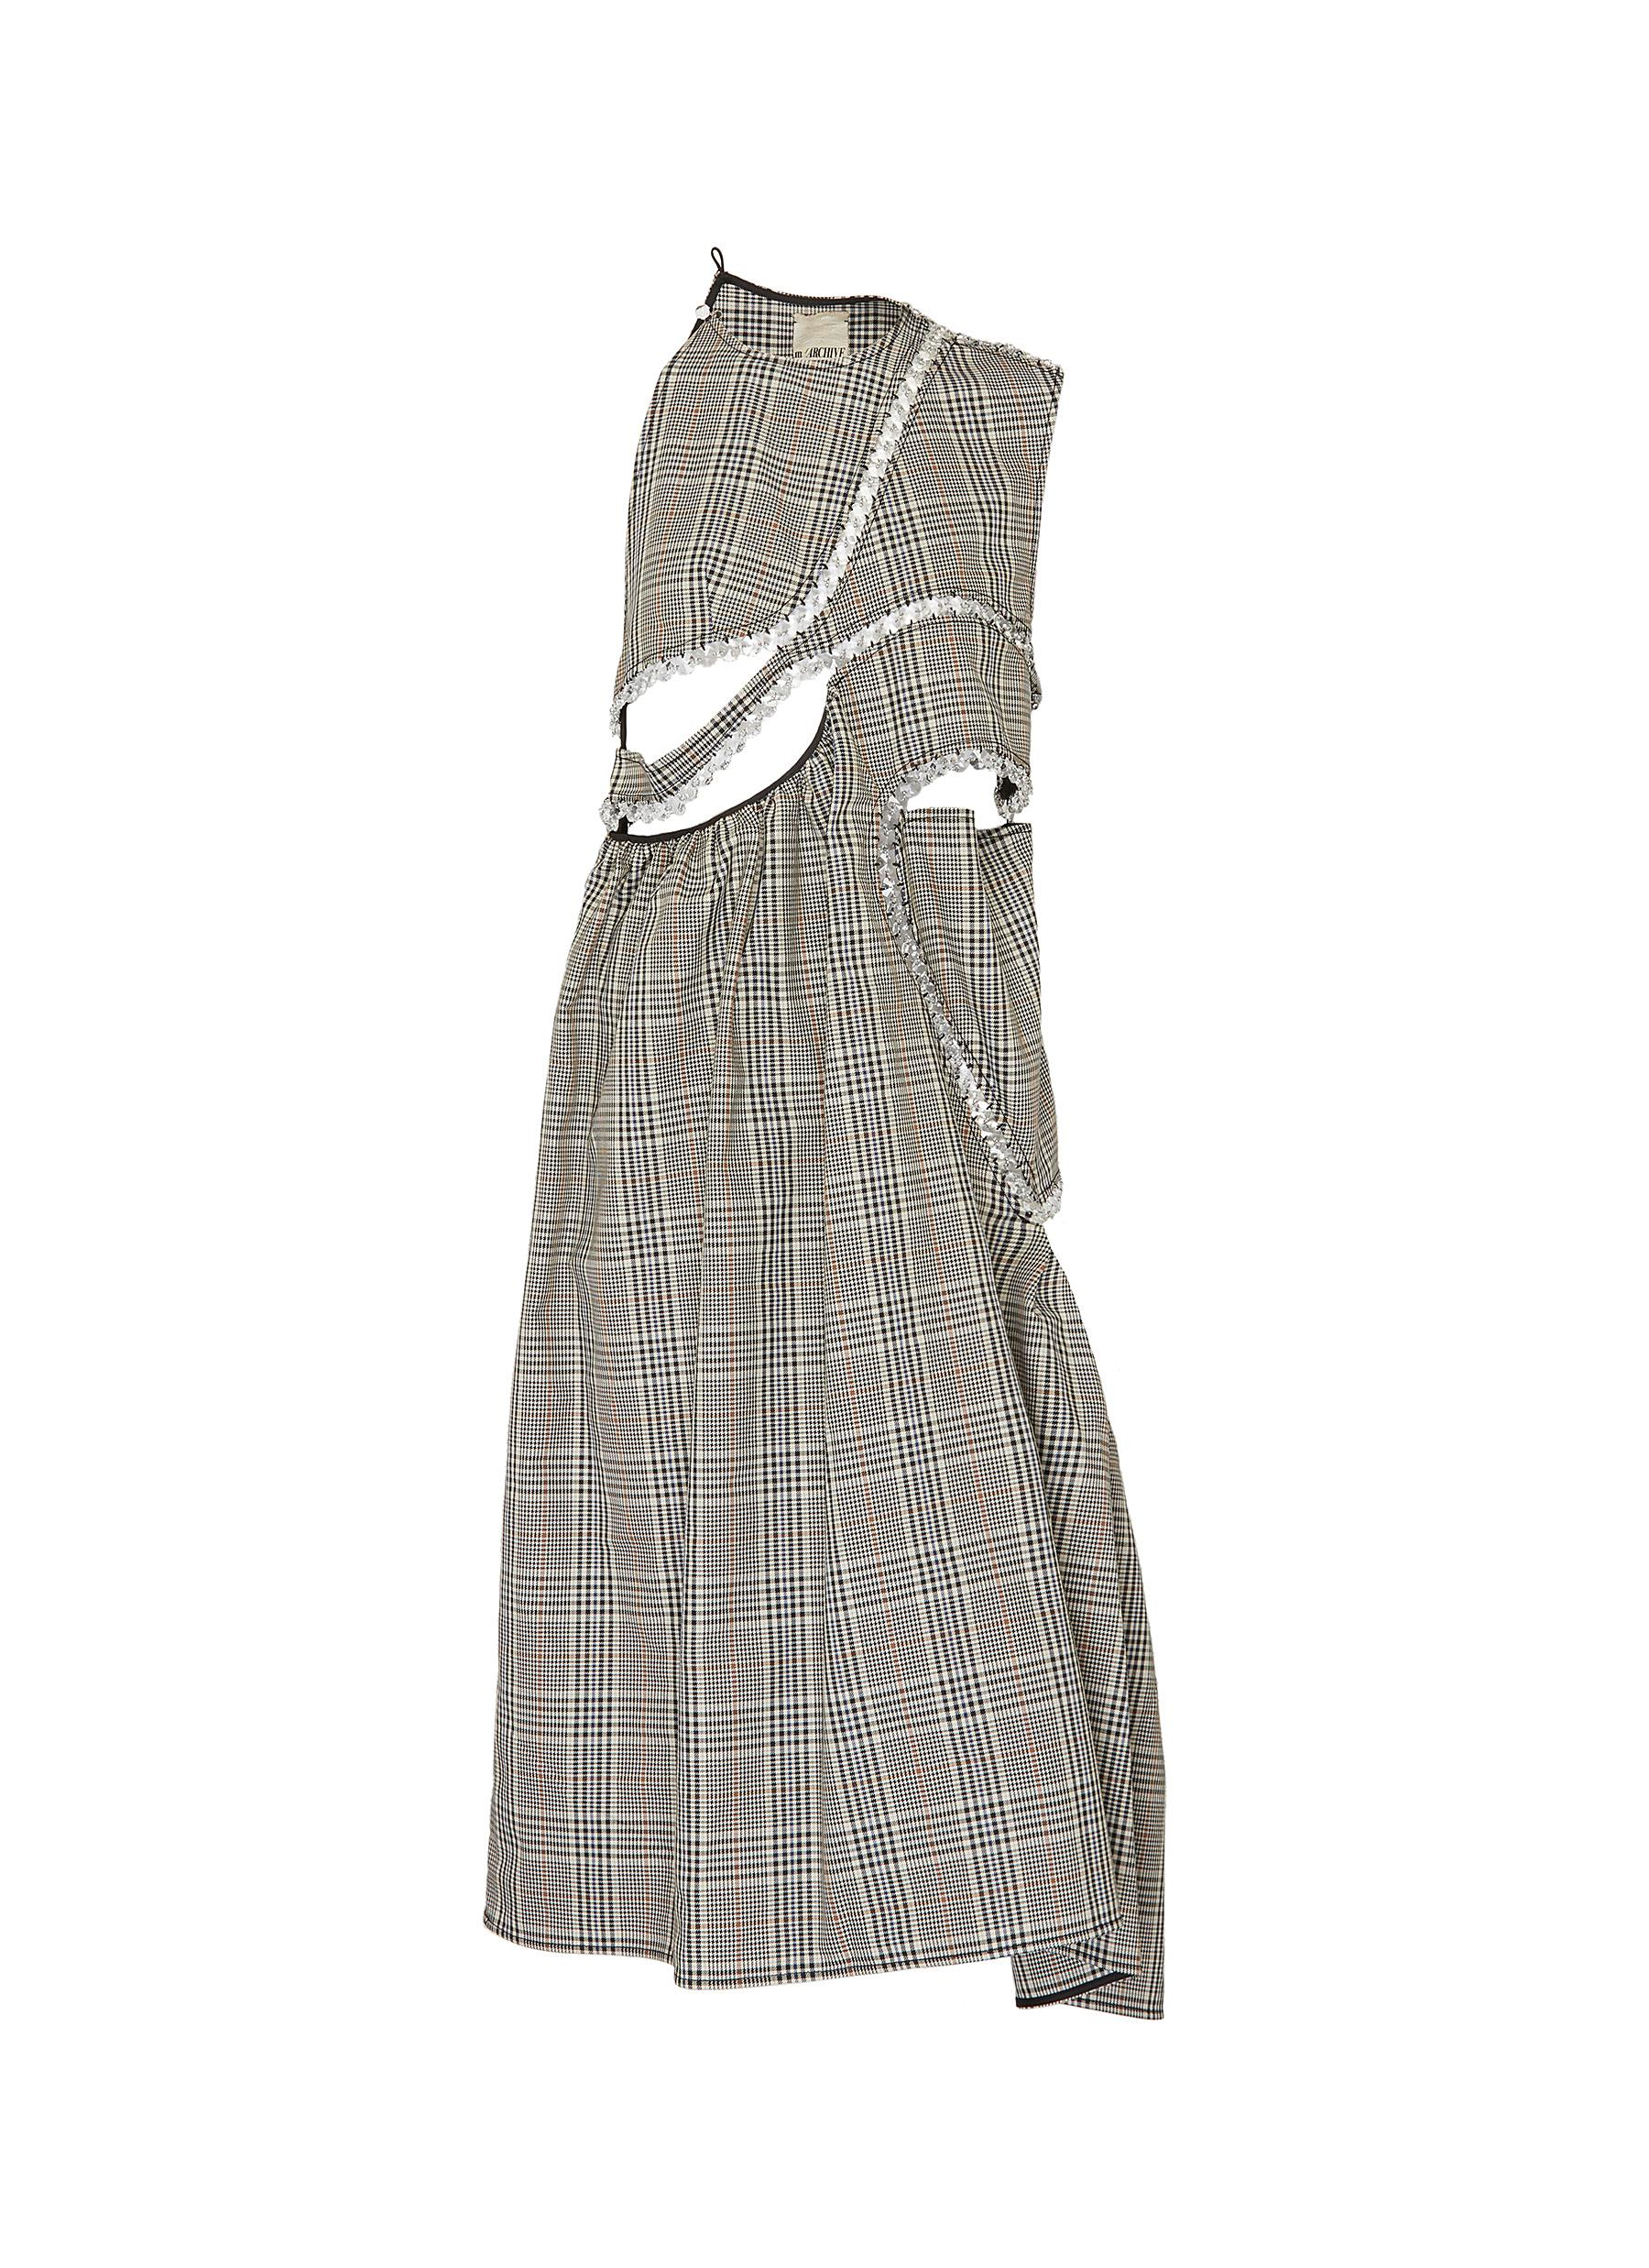 Check plaid embellished cut out maxi dress by Märchen